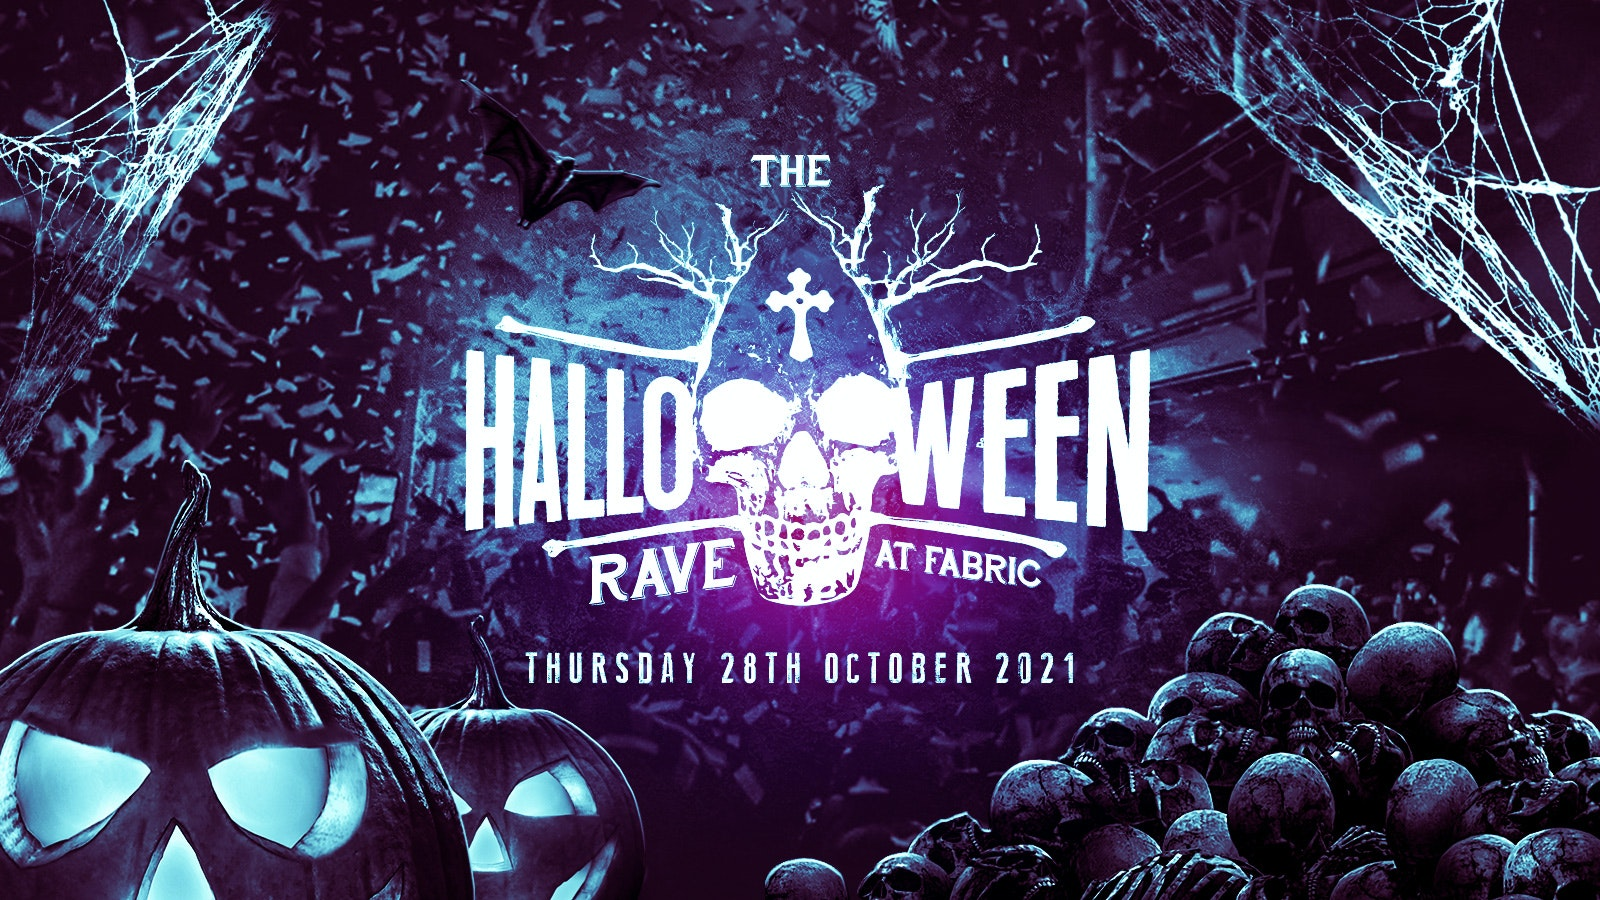 ⚠️FINAL 50 TICKETS⚠️ – The Halloween Rave at Fabric!